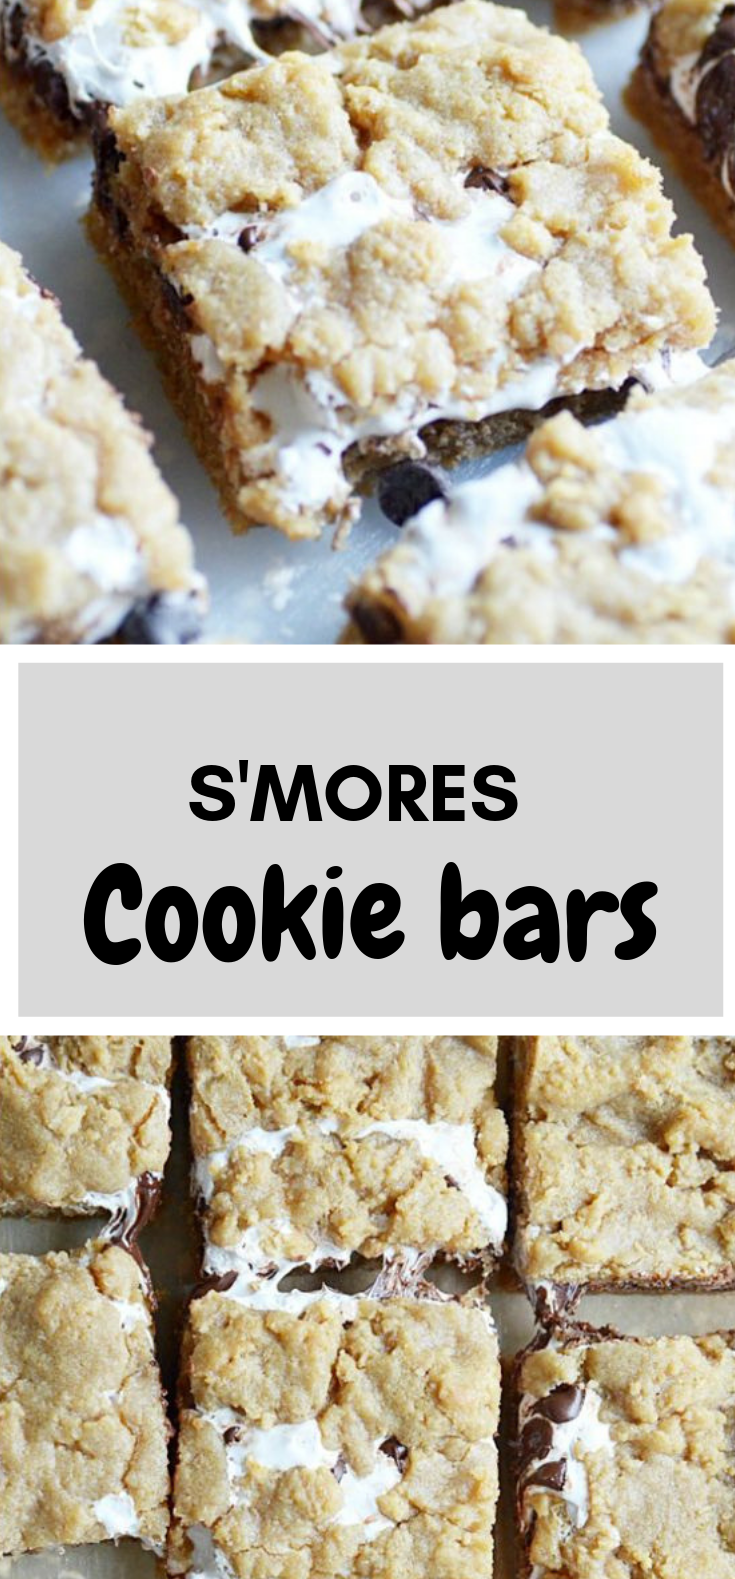 S'mores Cookie Bars #Dessert #cake